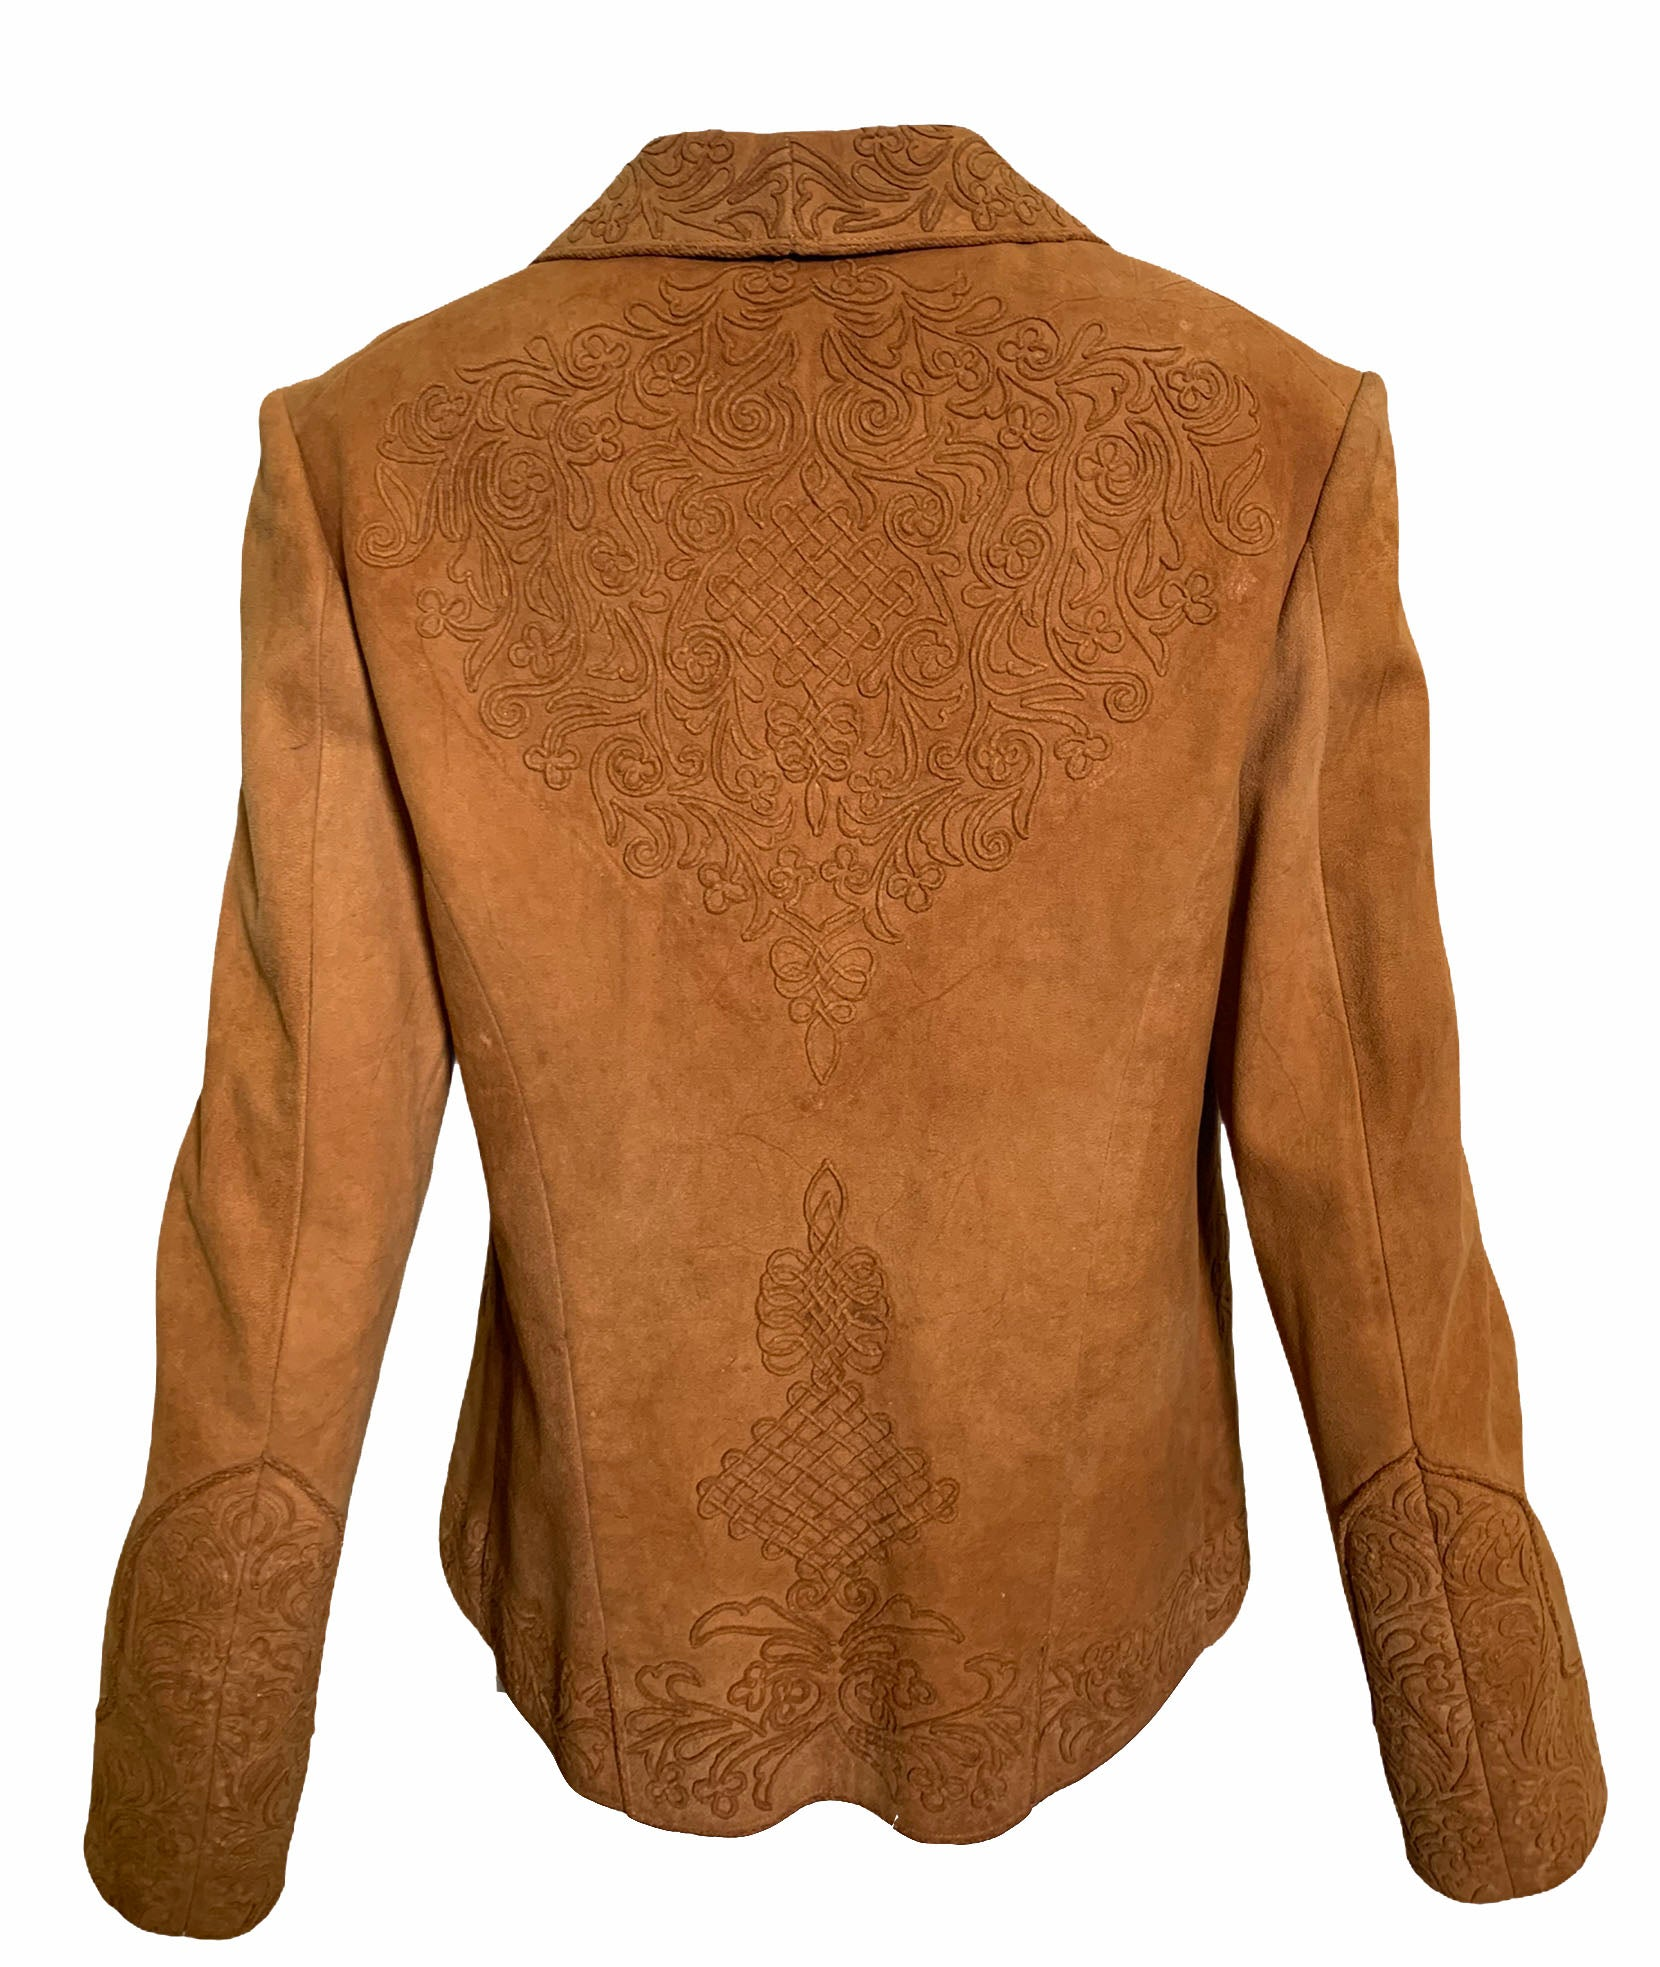 Argentinian 40s Tan Suede Jacket with Couched Trim  BACK 2 of 4